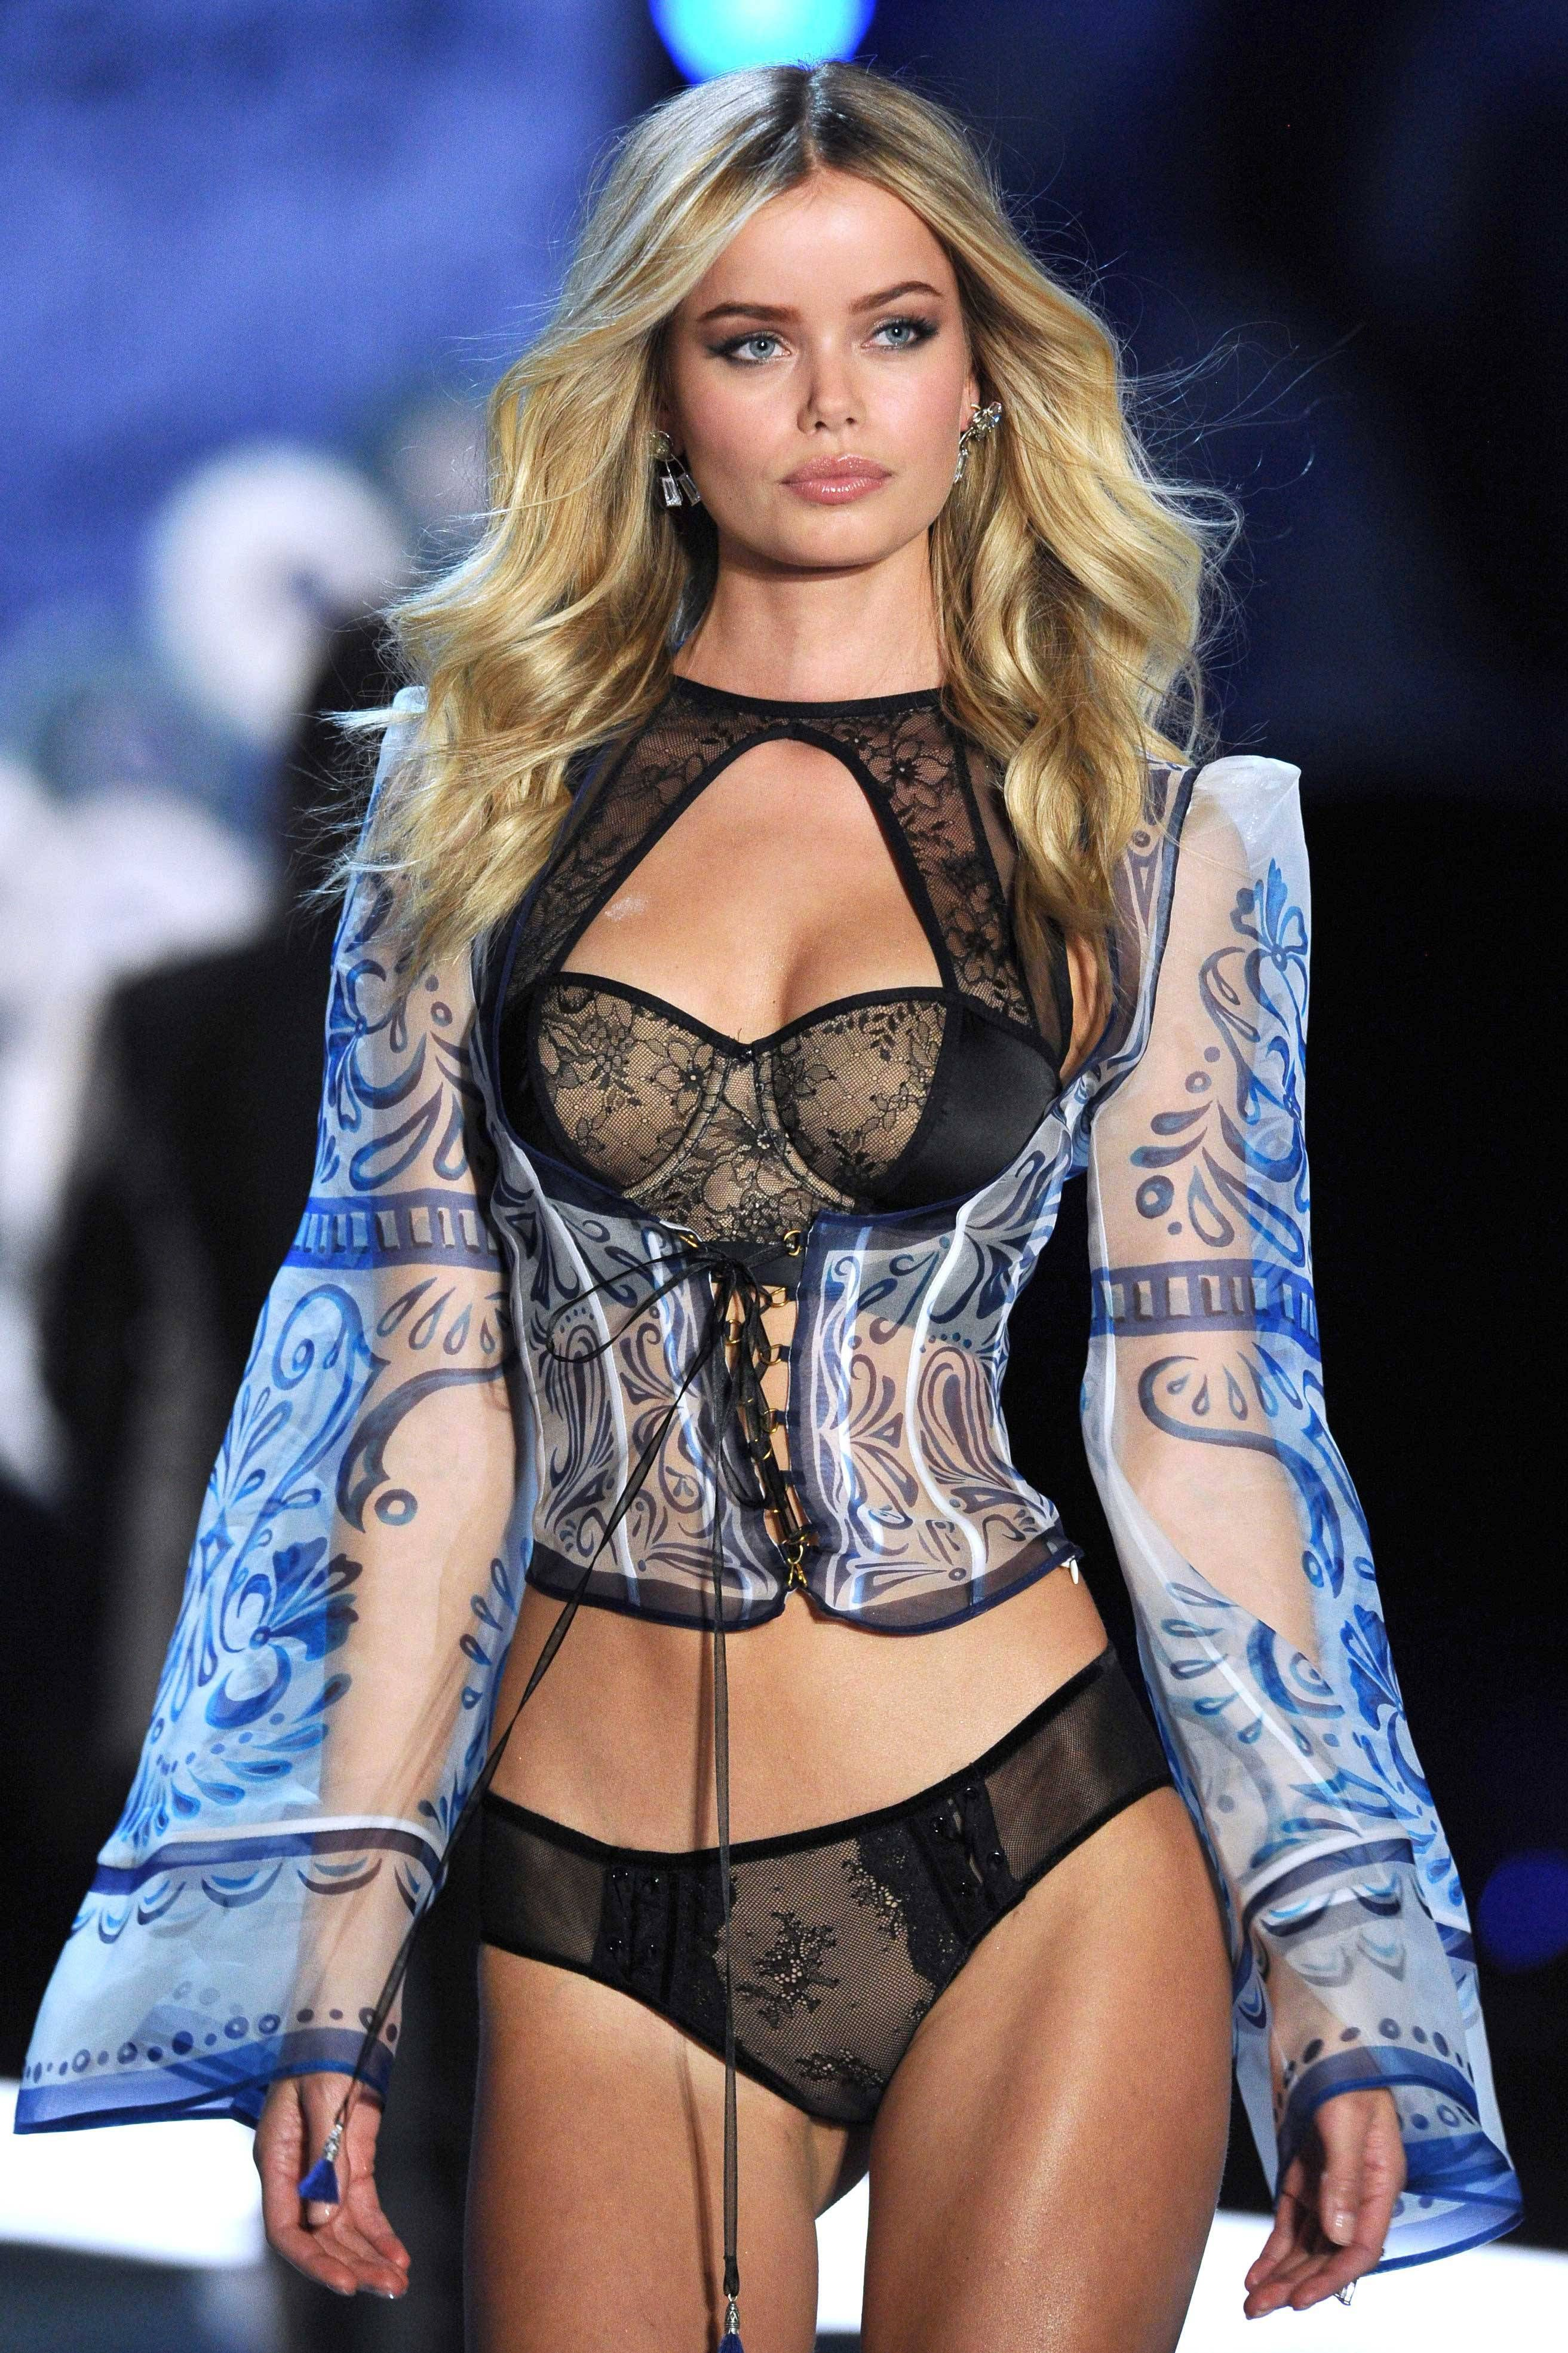 Frida Aasen NOR 2 2017 nudes (95 foto and video), Ass, Leaked, Boobs, braless 2017